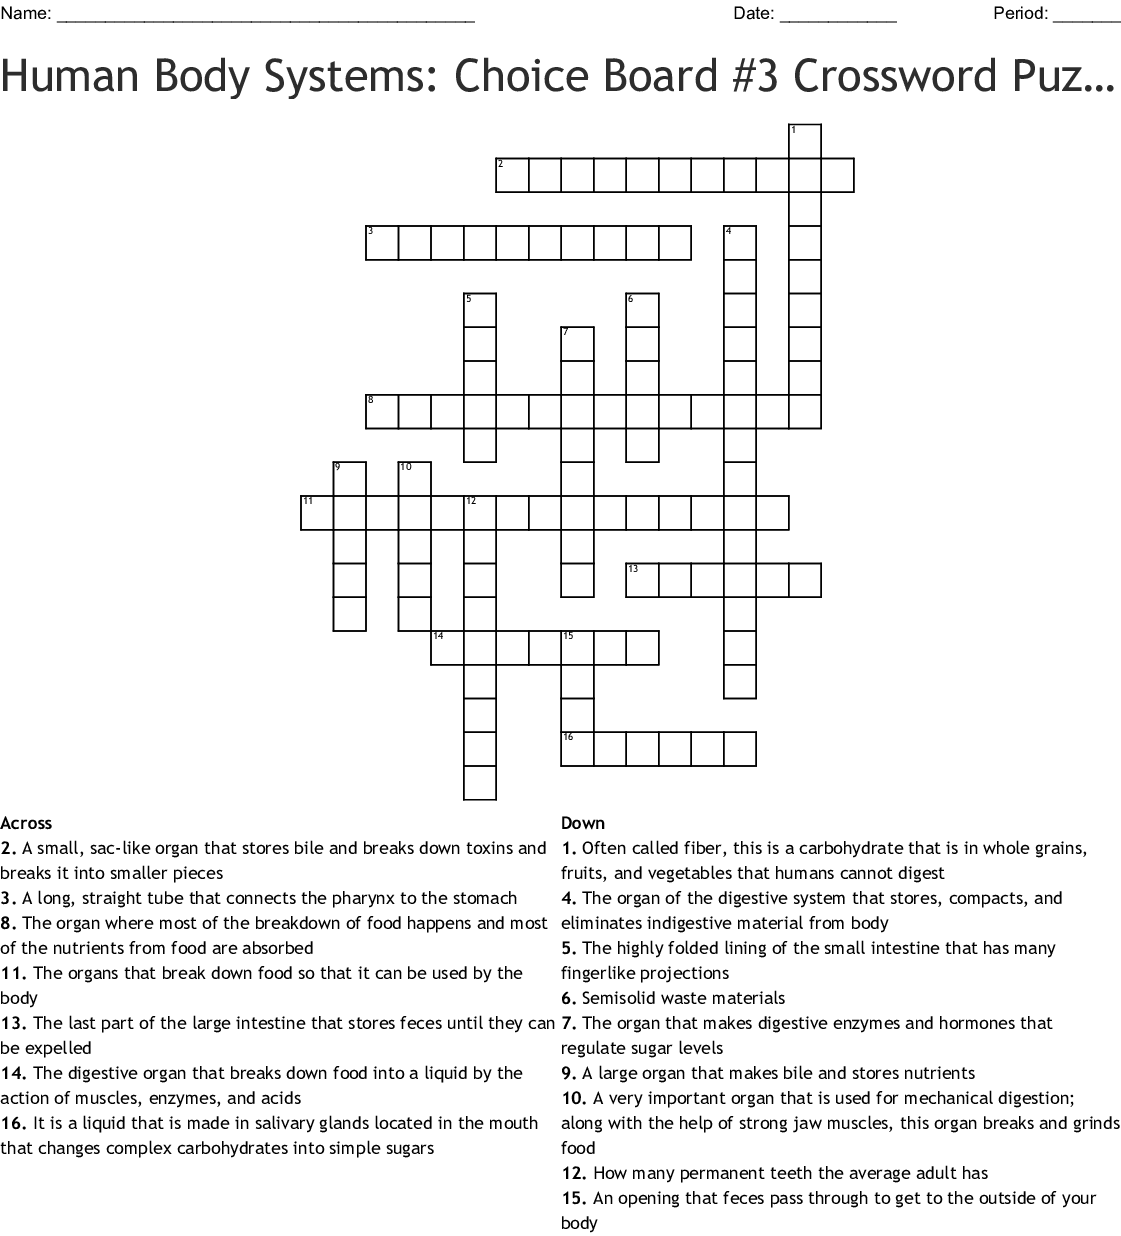 Human Body Systems Choice Board 3 Crossword Puzzle On The Digestive System Crossword